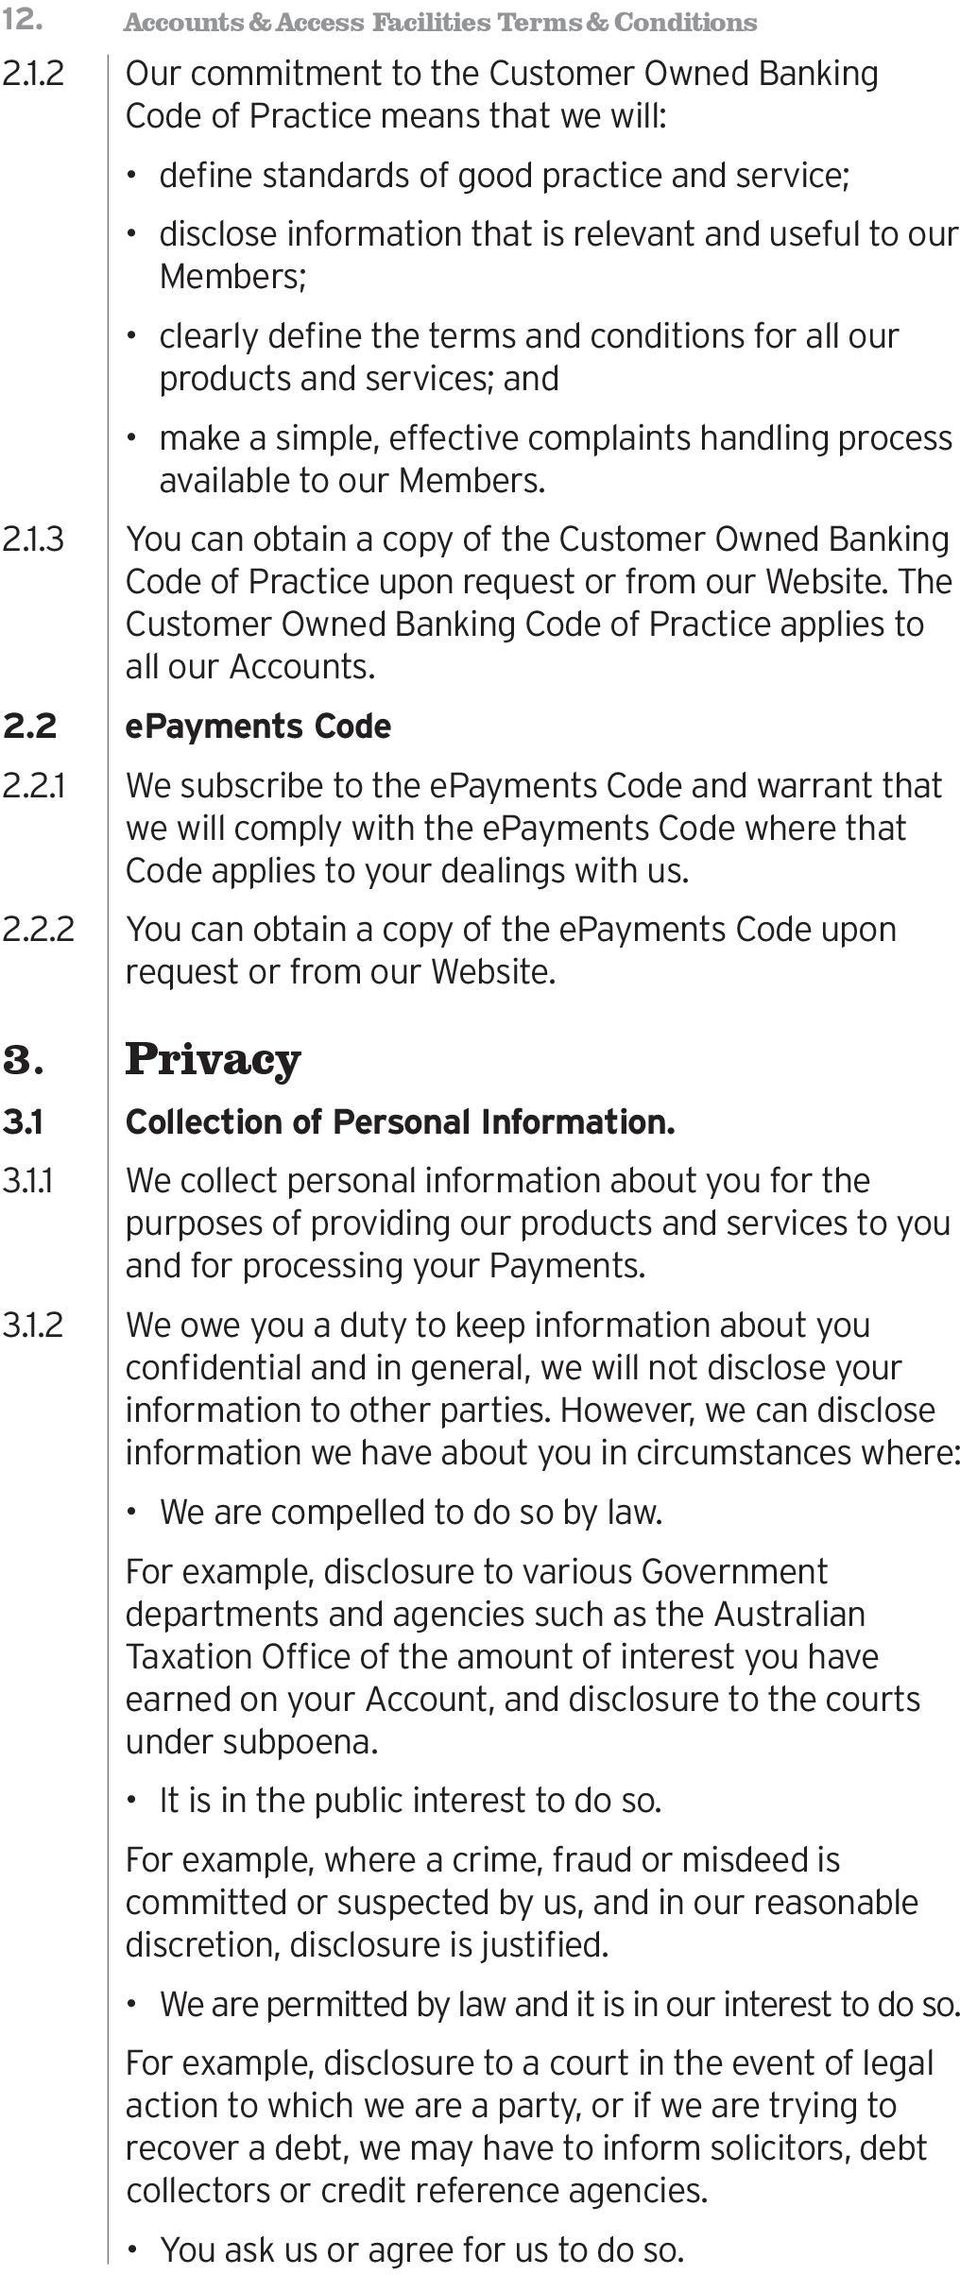 to our Members. 2.1.3 You can obtain a copy of the Customer Owned Banking Code of Practice upon request or from our Website. The Customer Owned Banking Code of Practice applies to all our Accounts. 2.2 epayments Code 2.